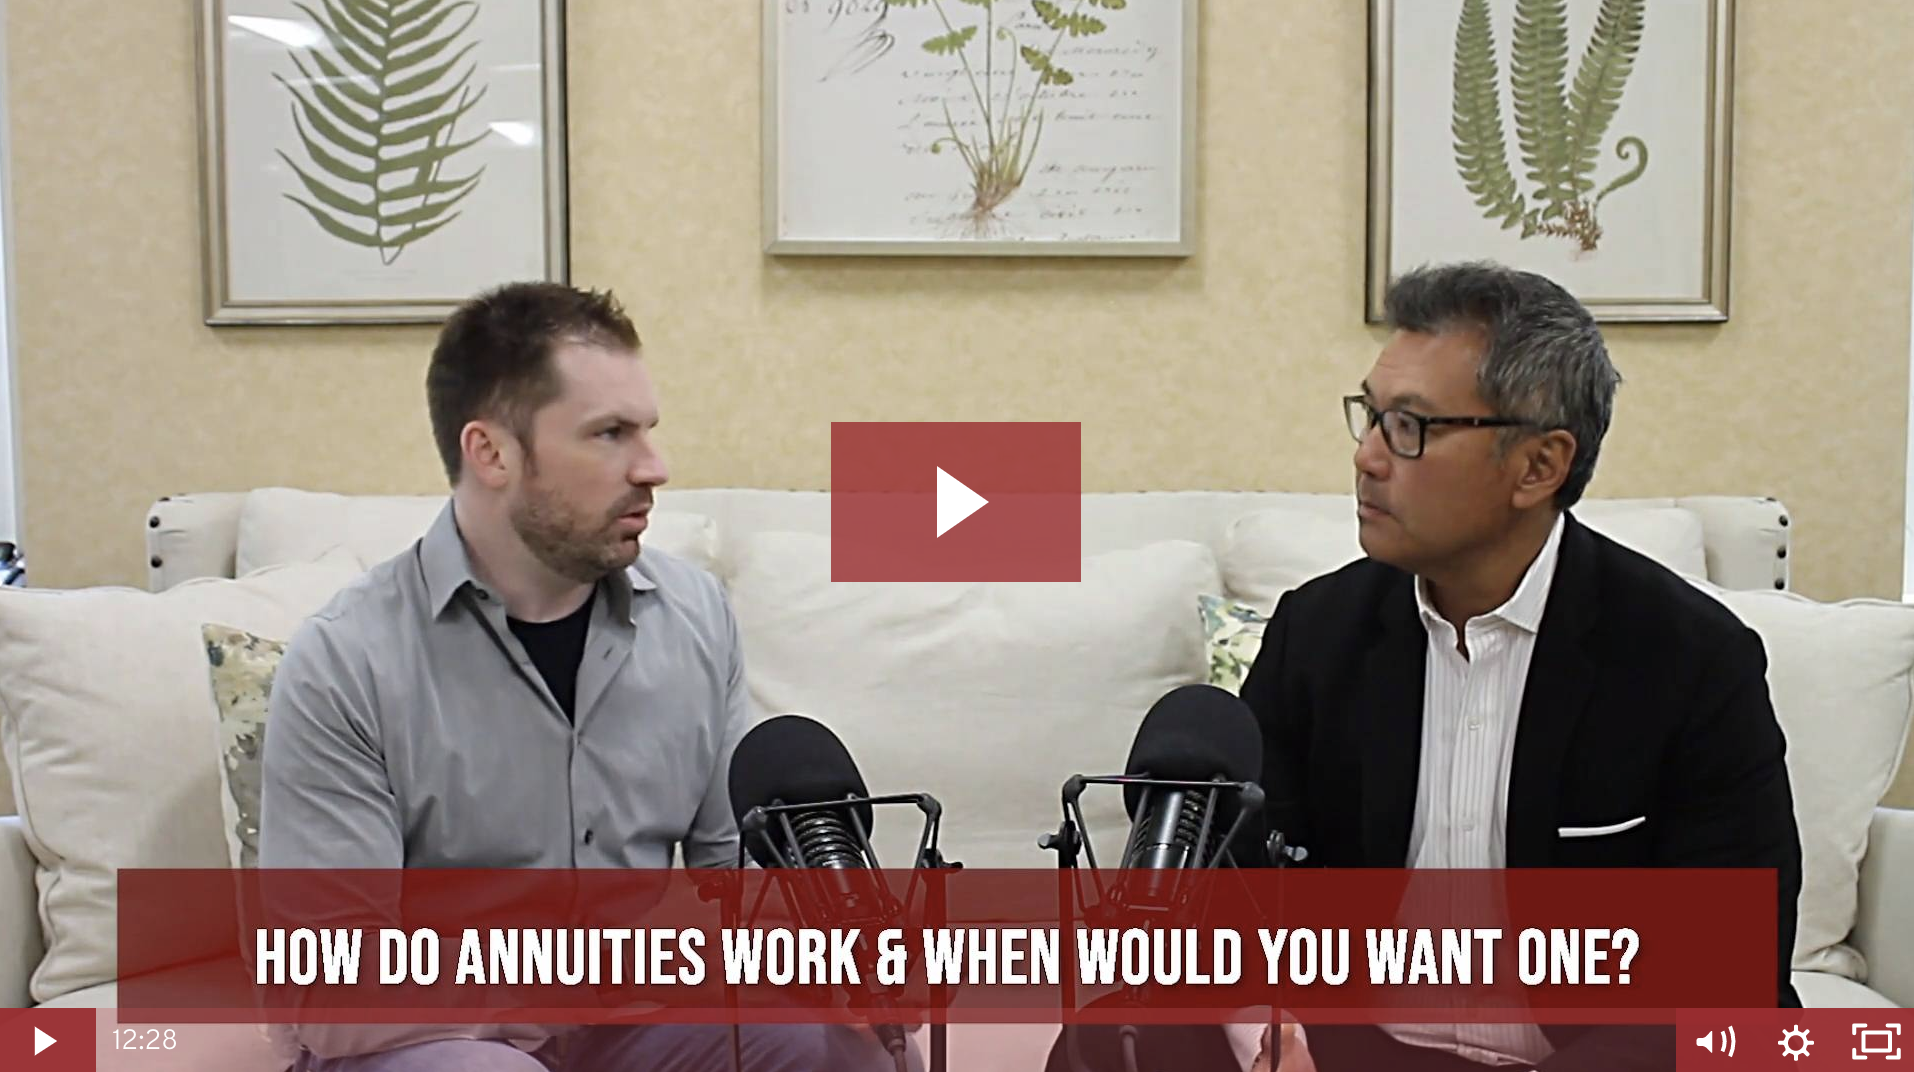 The History Of Annuities & Defining Their Purpose